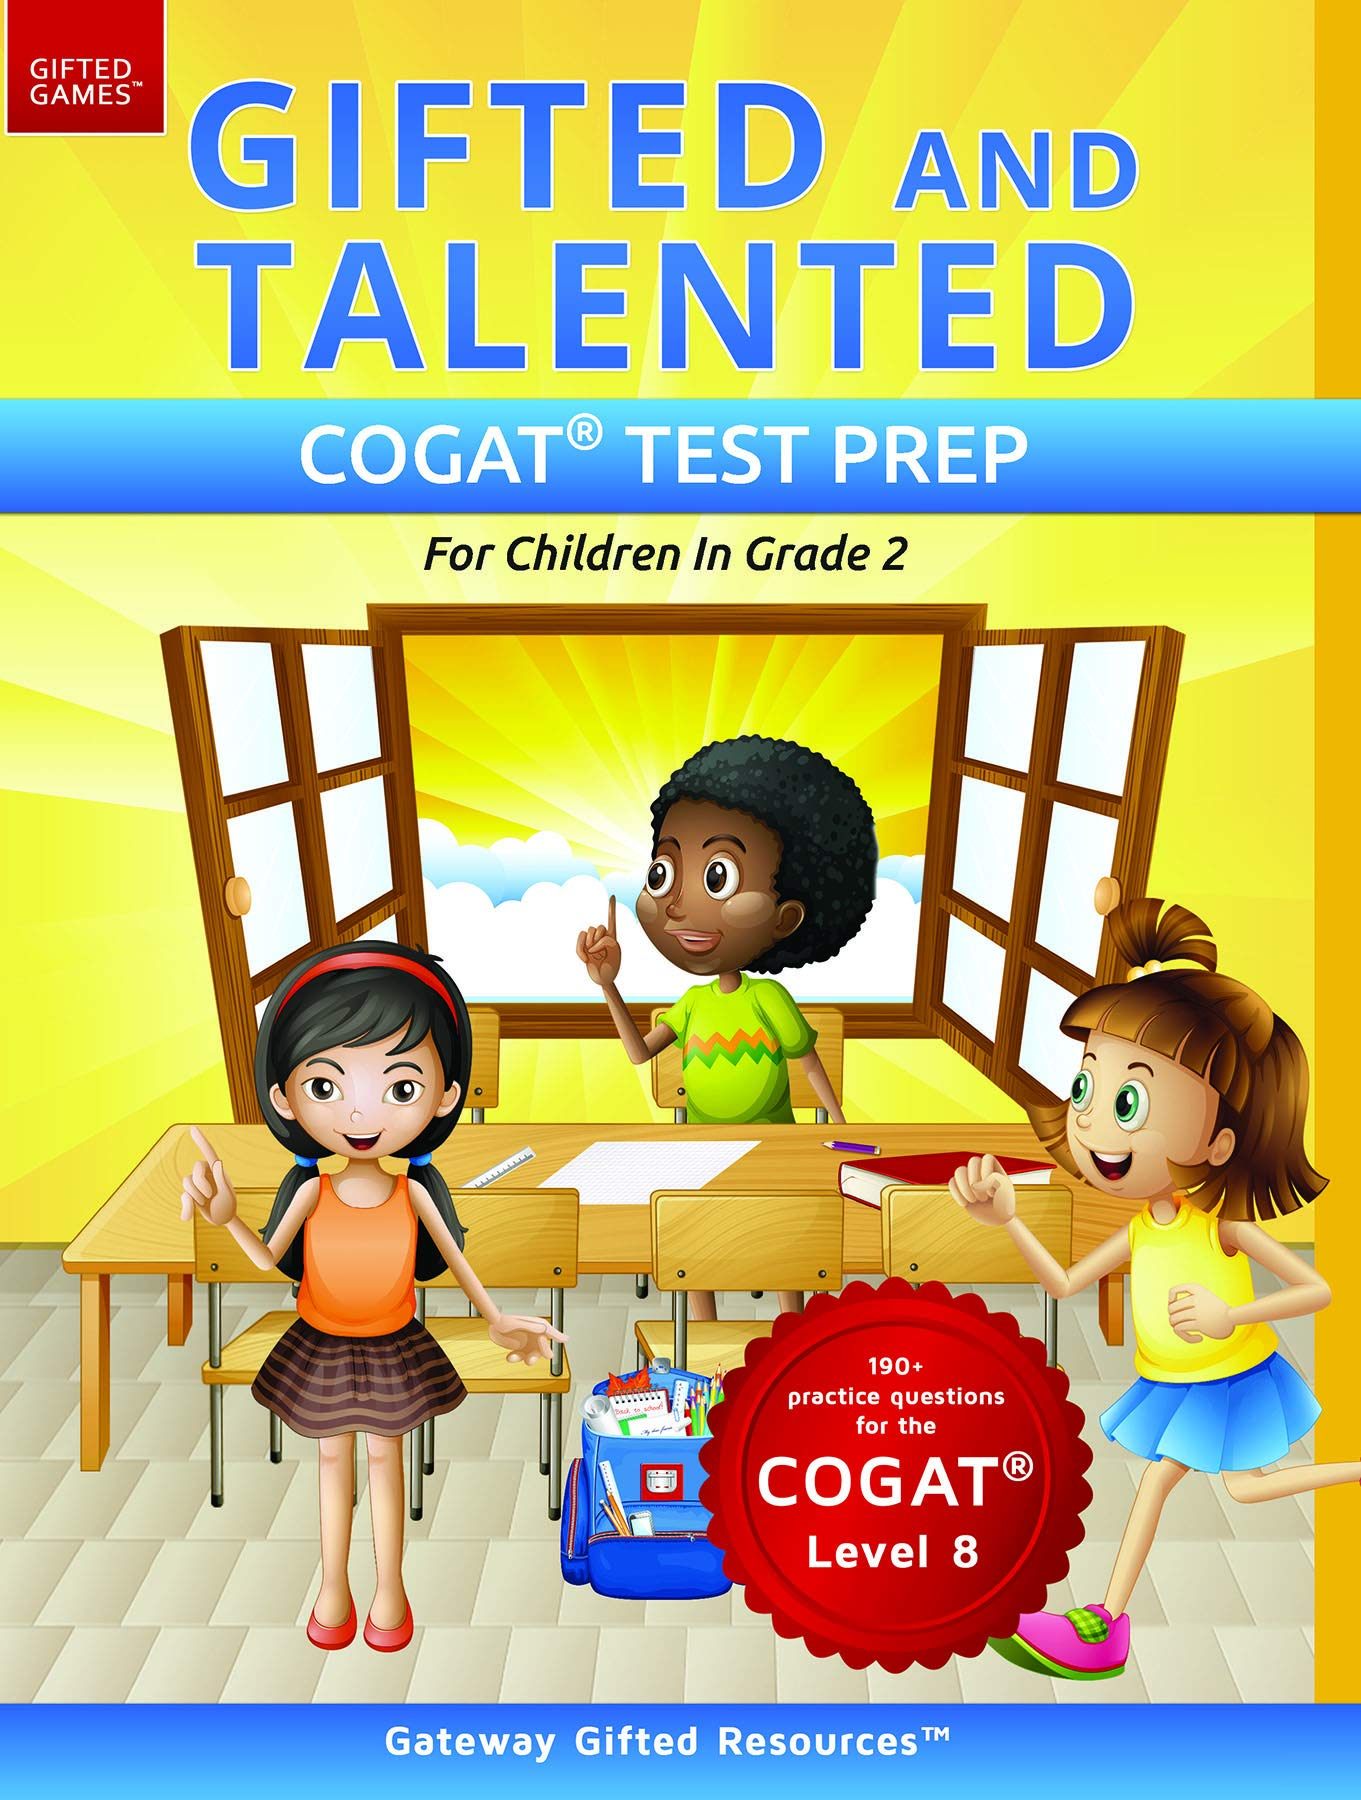 Who Are Gifted And Talented And What Do >> Amazon Com Gifted And Talented Cogat Test Prep Grade 2